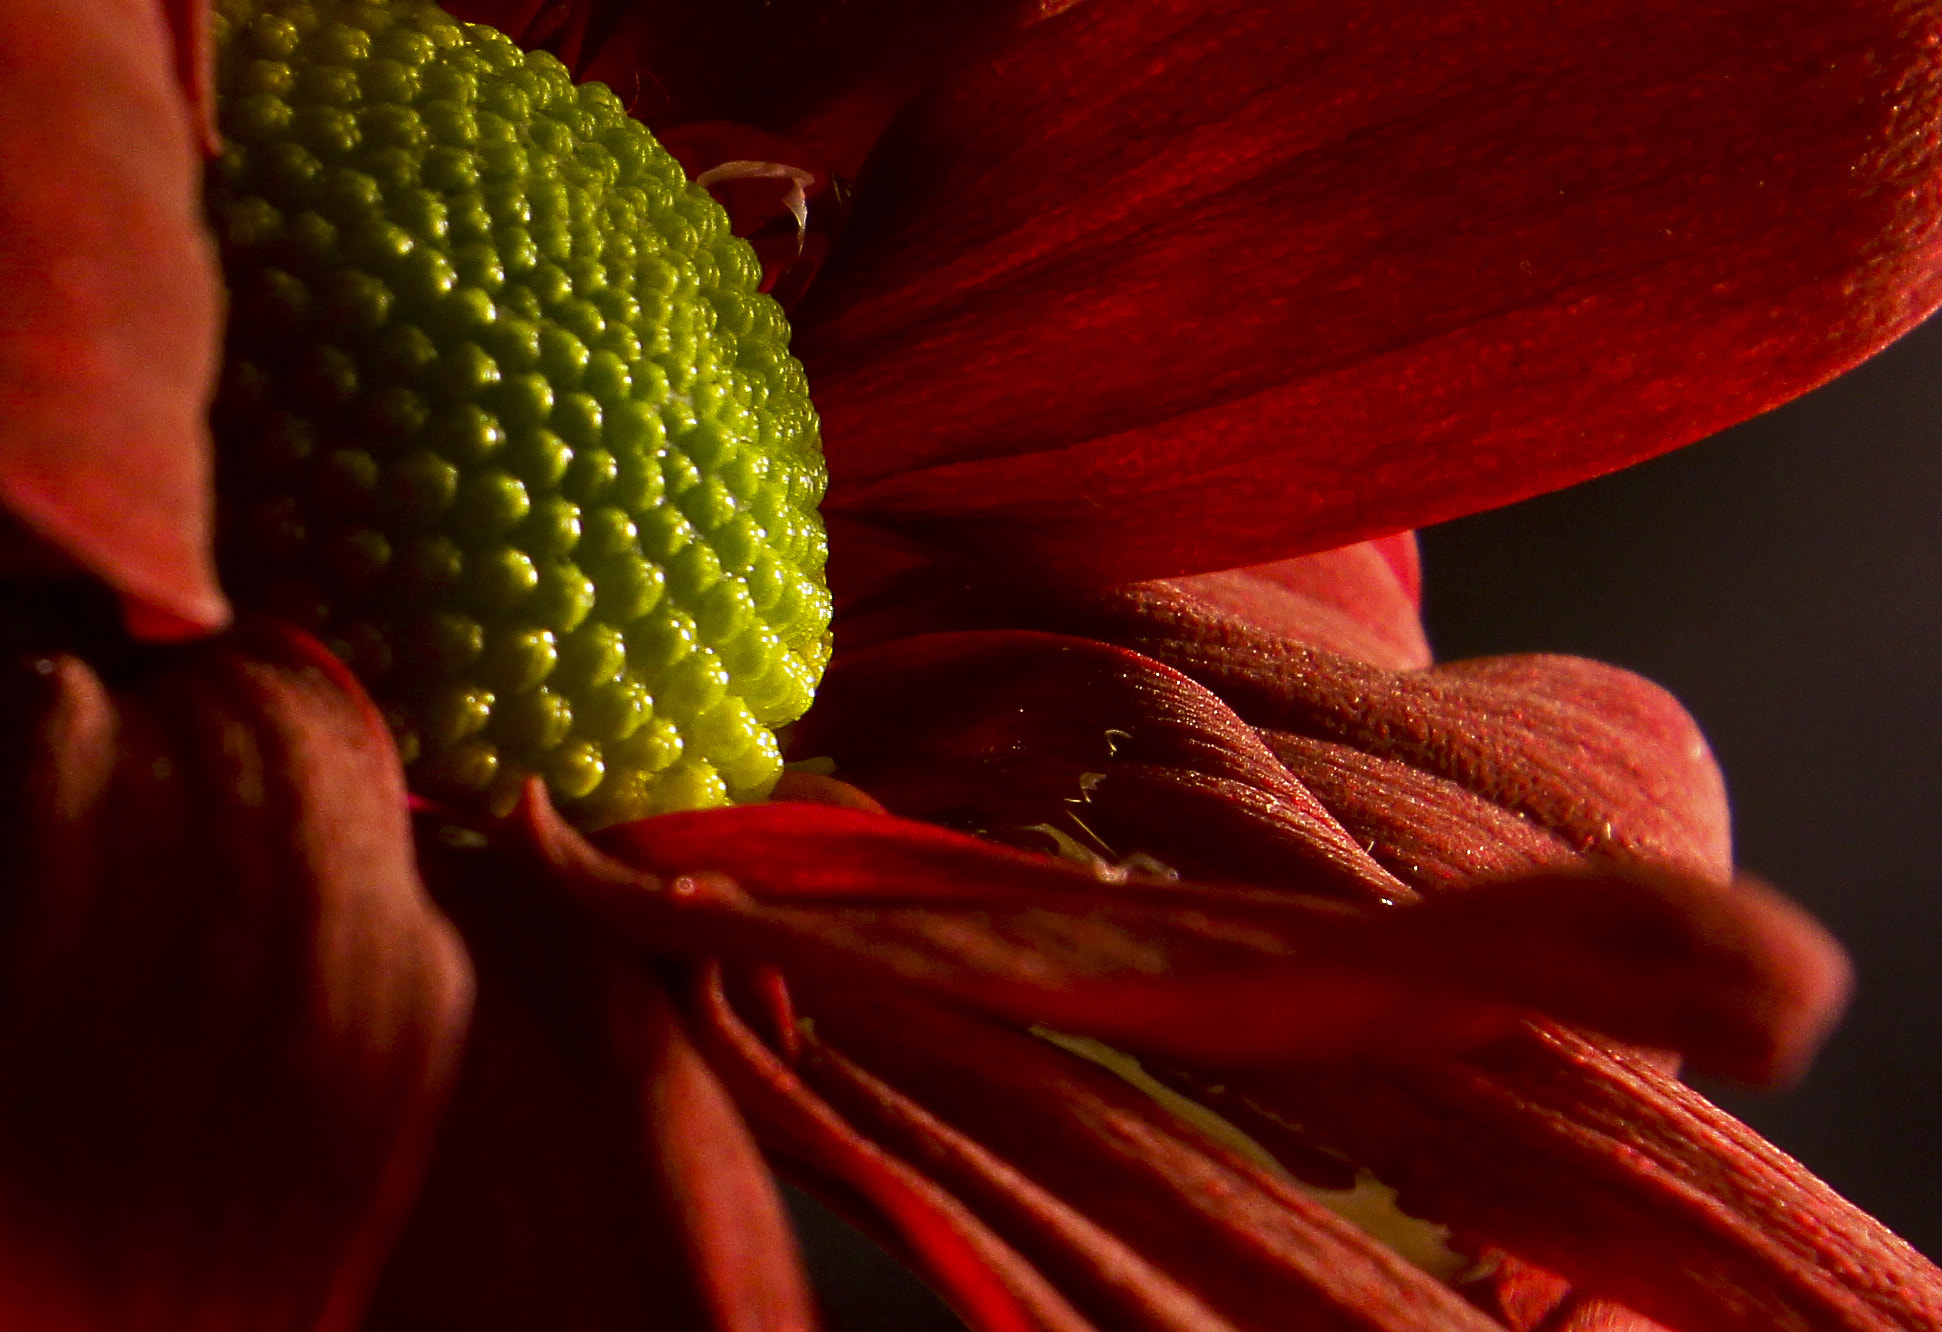 Photograph Red loves green.. by Serdar Gür on 500px